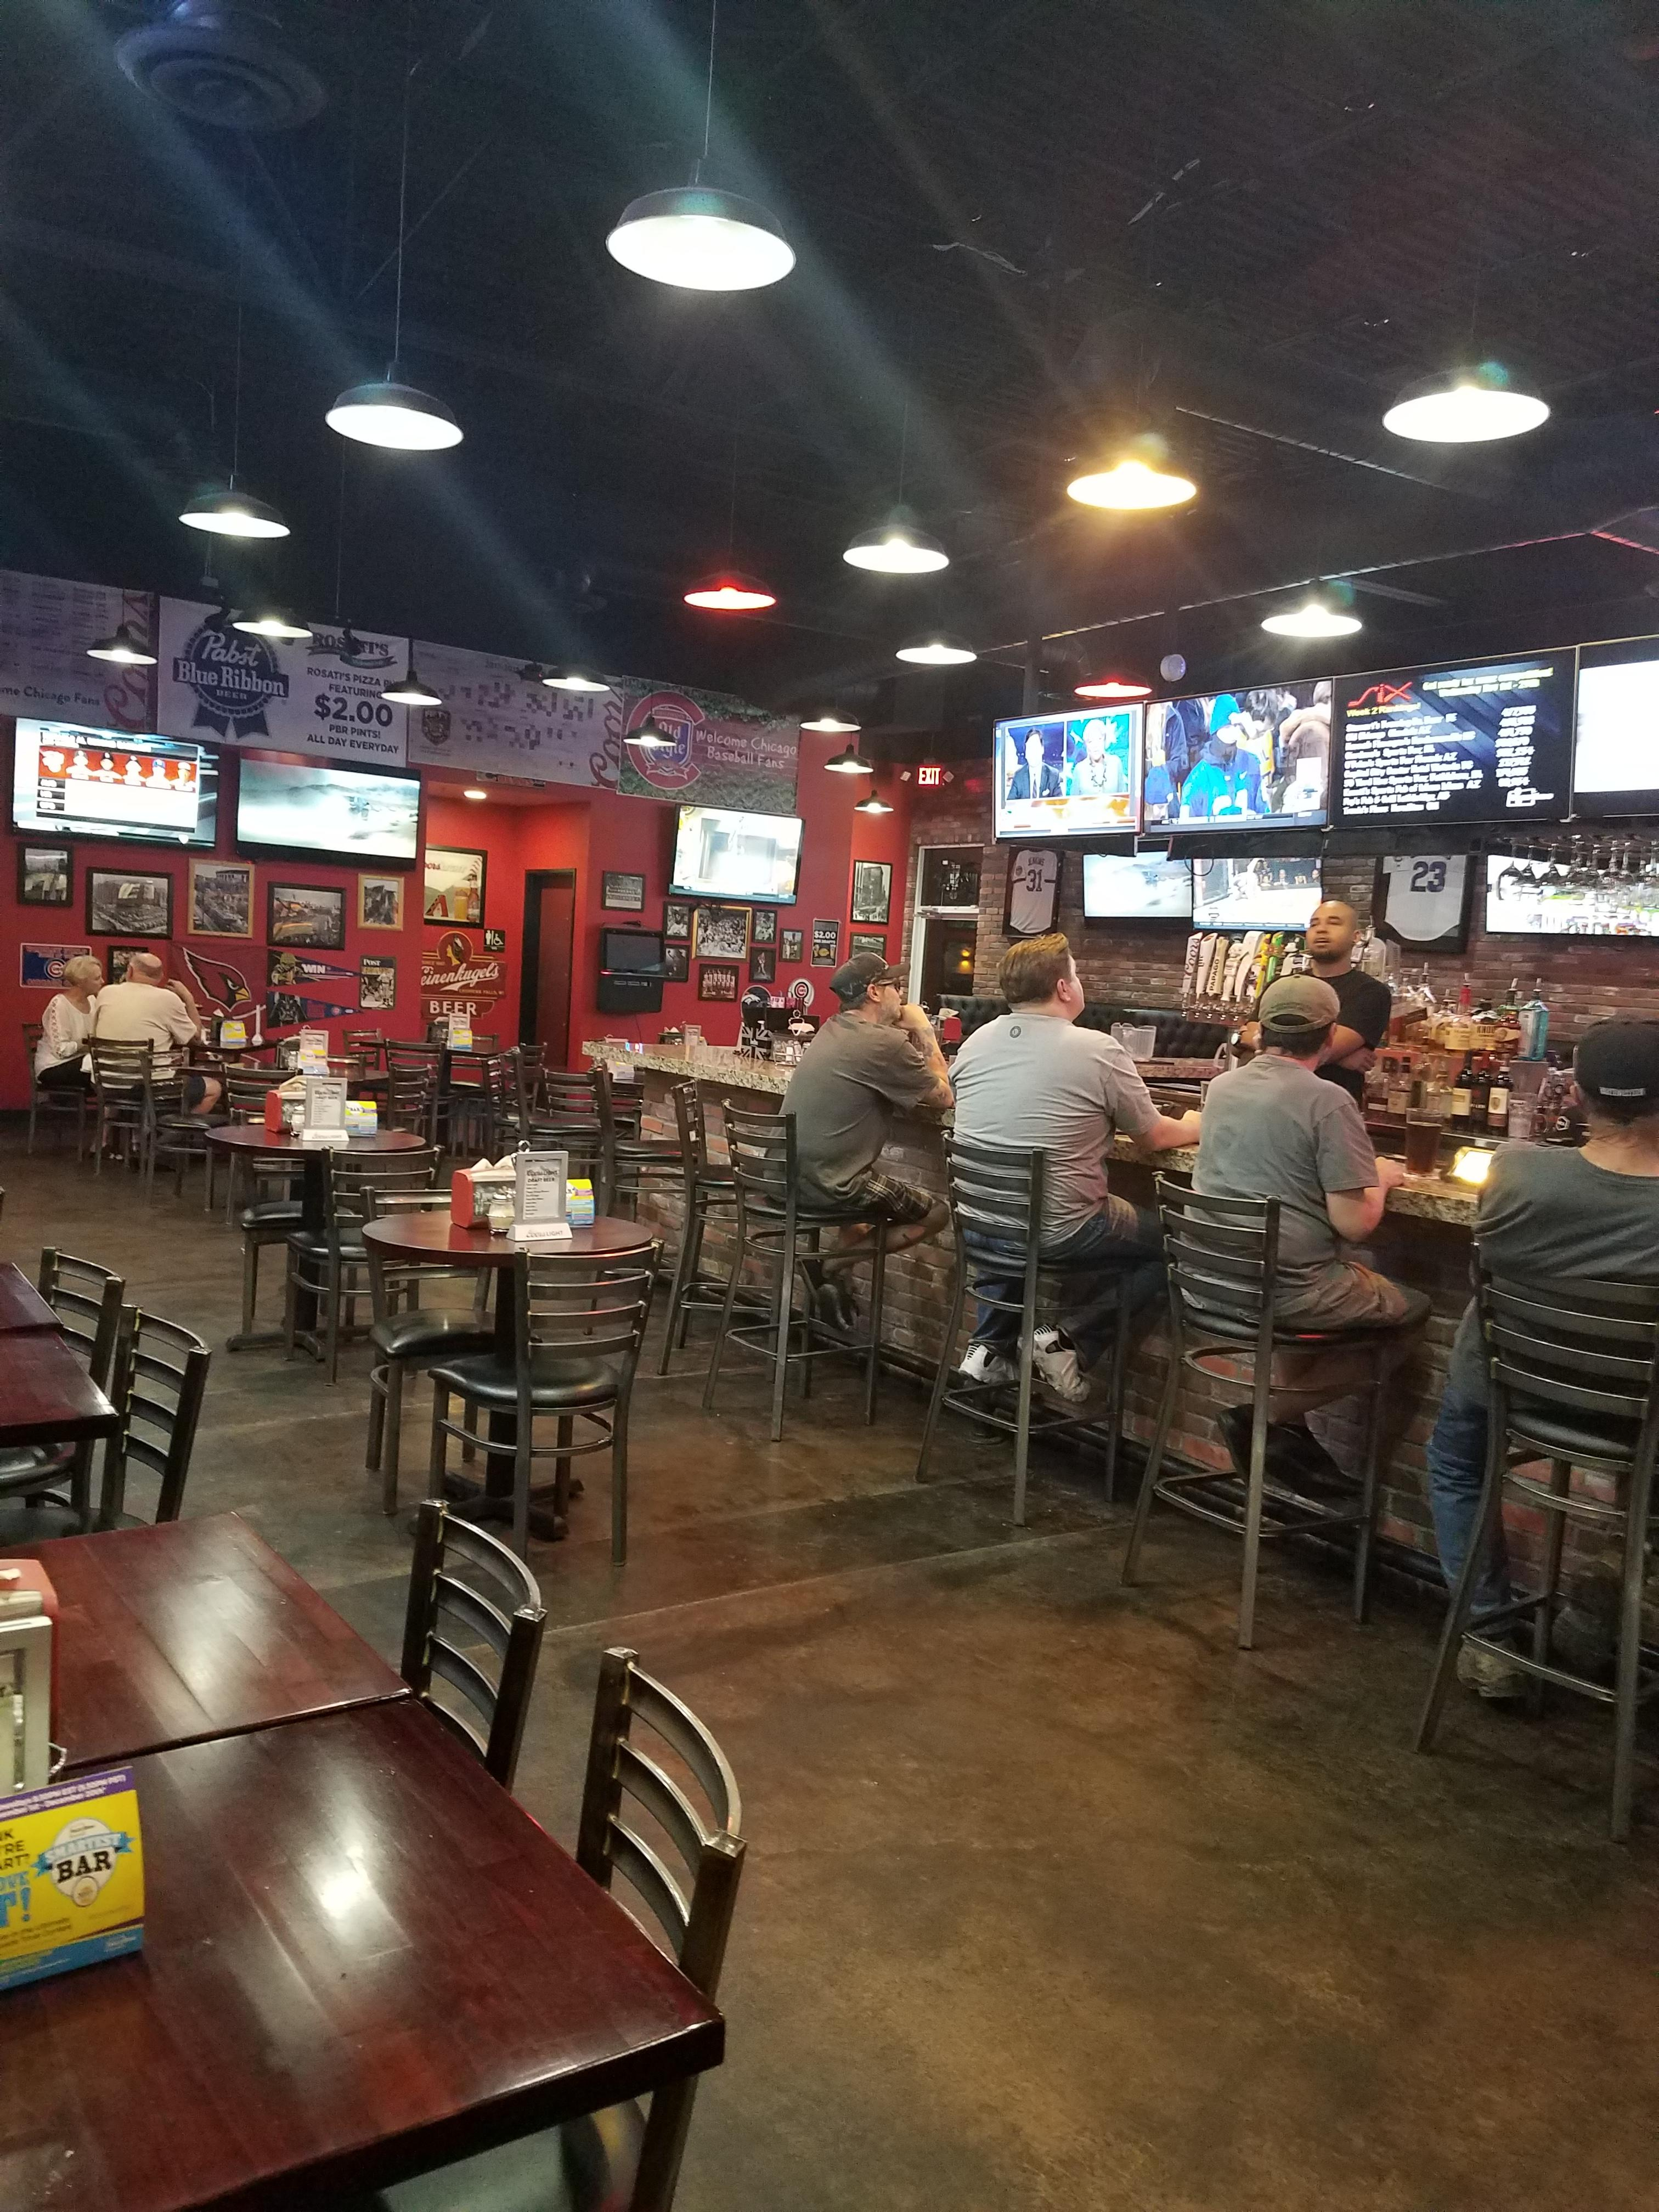 Rosatis pizza and sports bar image 2